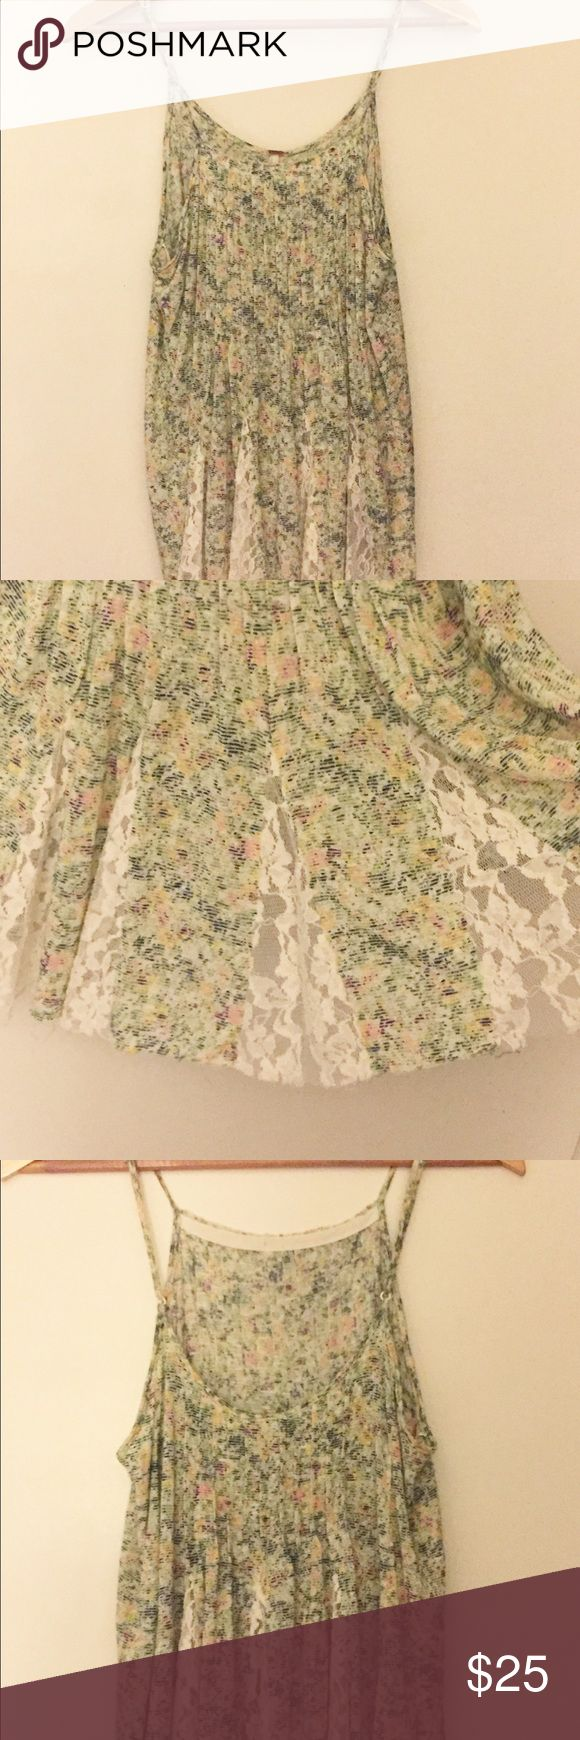 [Free People] Floral Lace Tank Light, airy, and comfortable top with adjustable straps and lace details. Can be worn with certain strapless bras, a bralette or backless bra. Excellent condition. No trades. Free People Tops